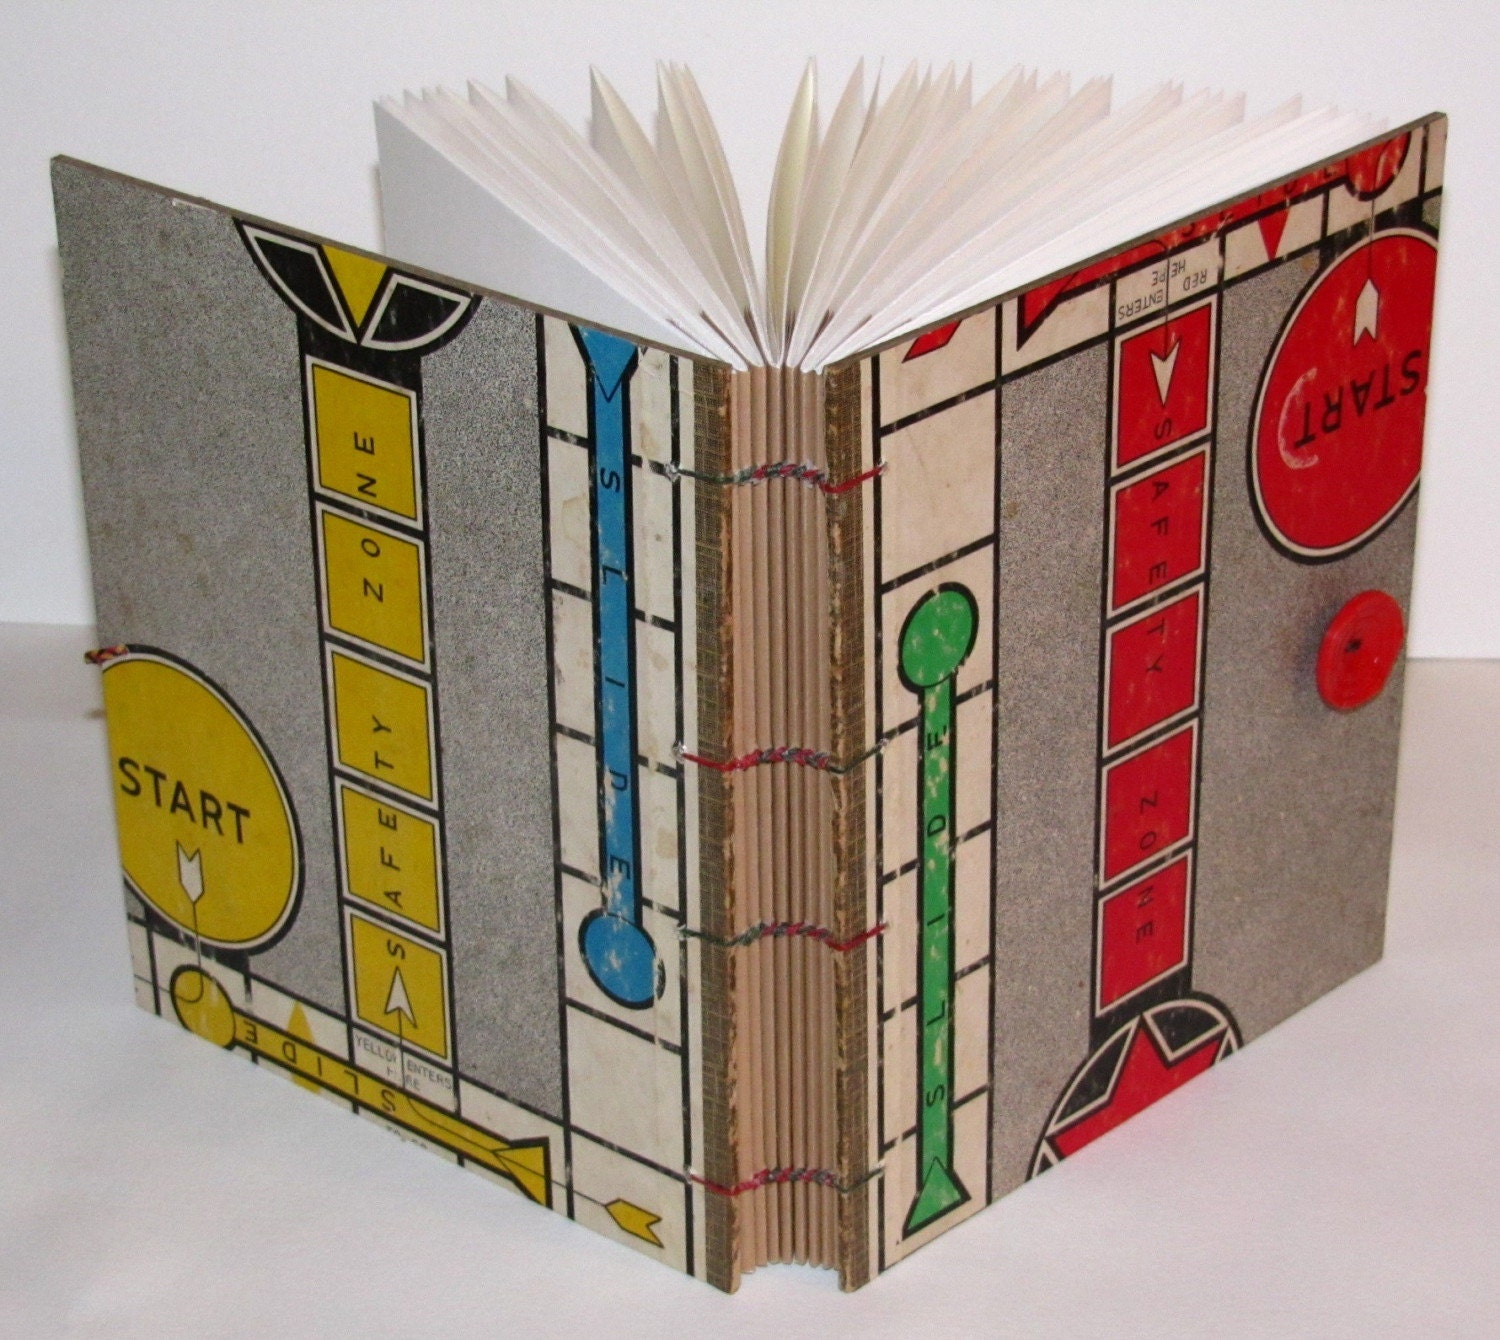 Book Cover Binding Material ~ Bookbinding etsy street team binding on a budget found materials